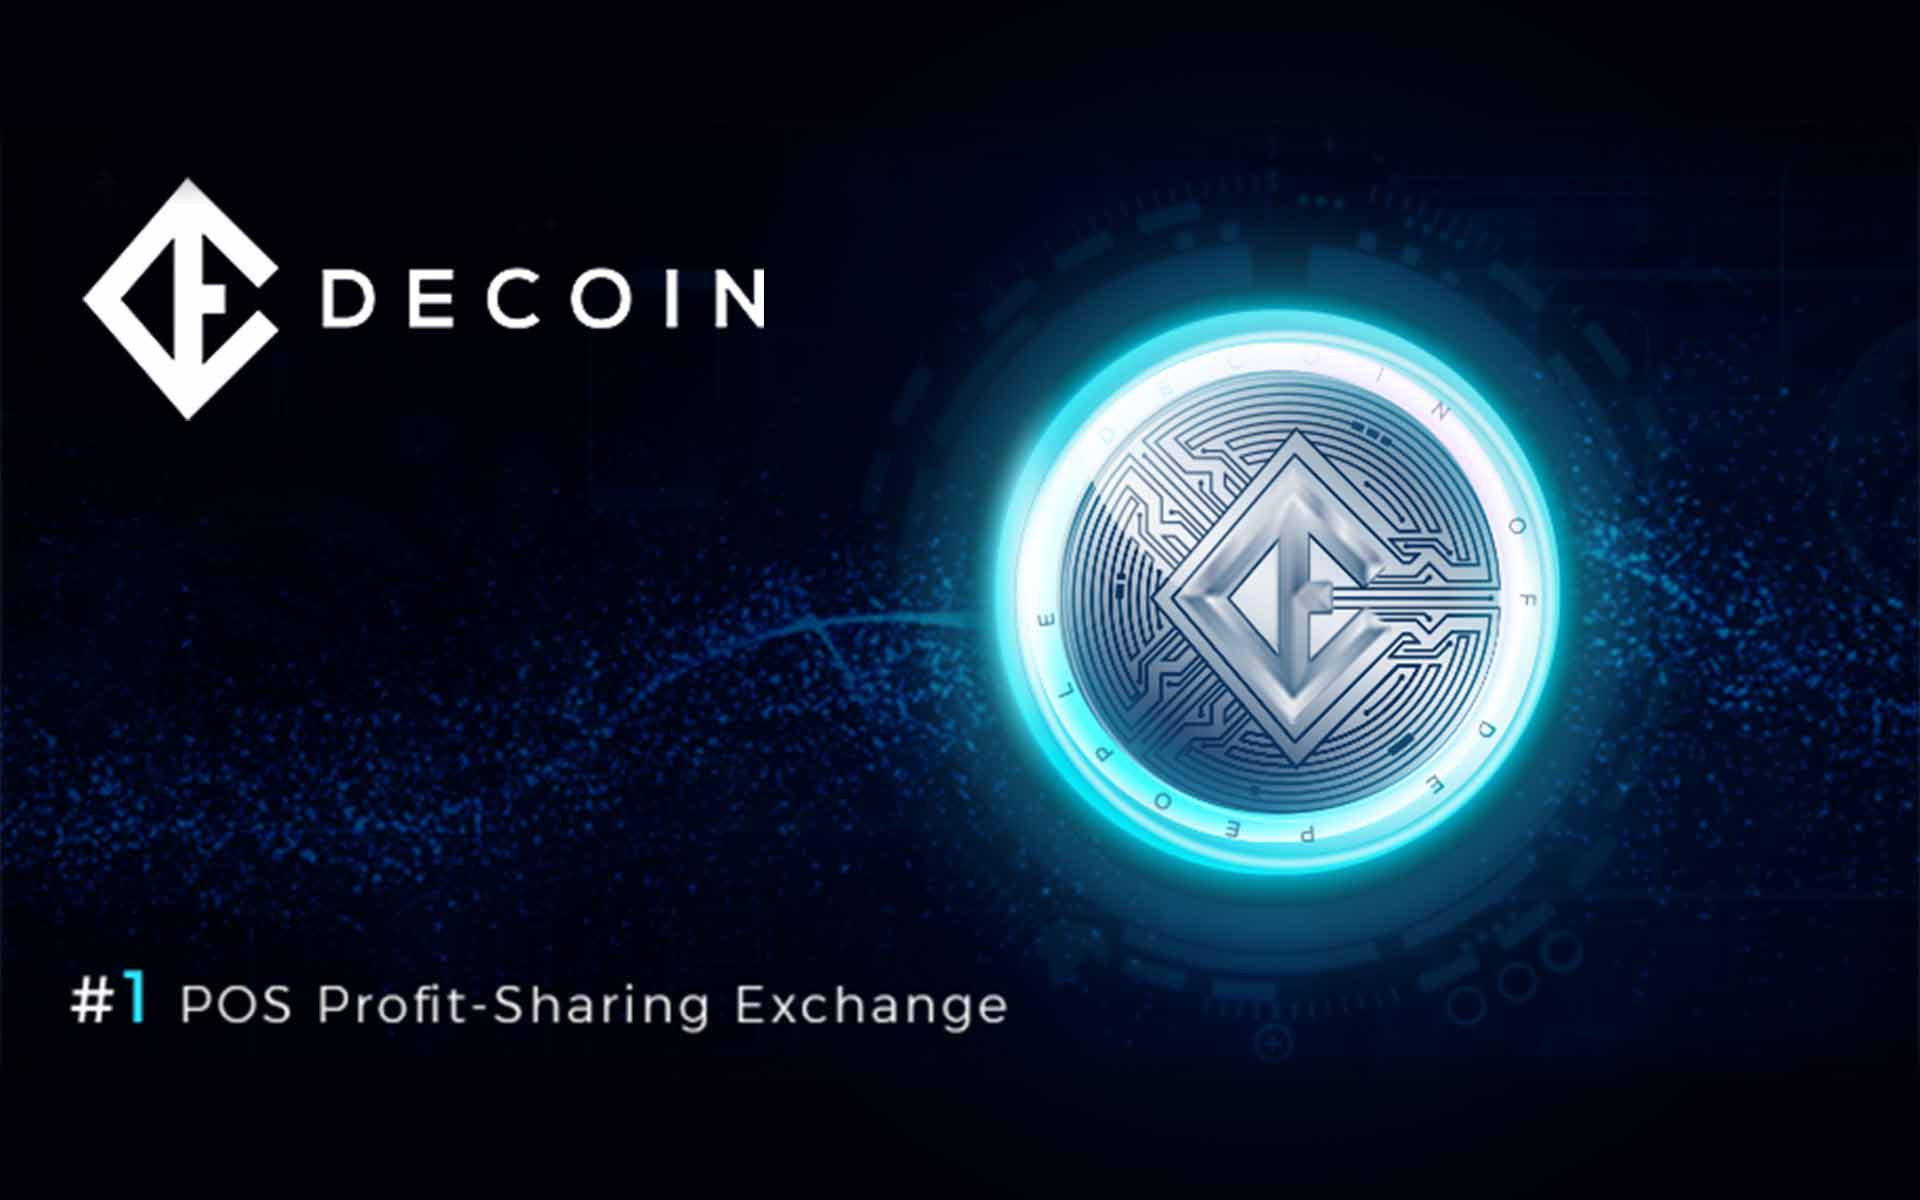 Decoin: What Makes It the Next Big Thing?